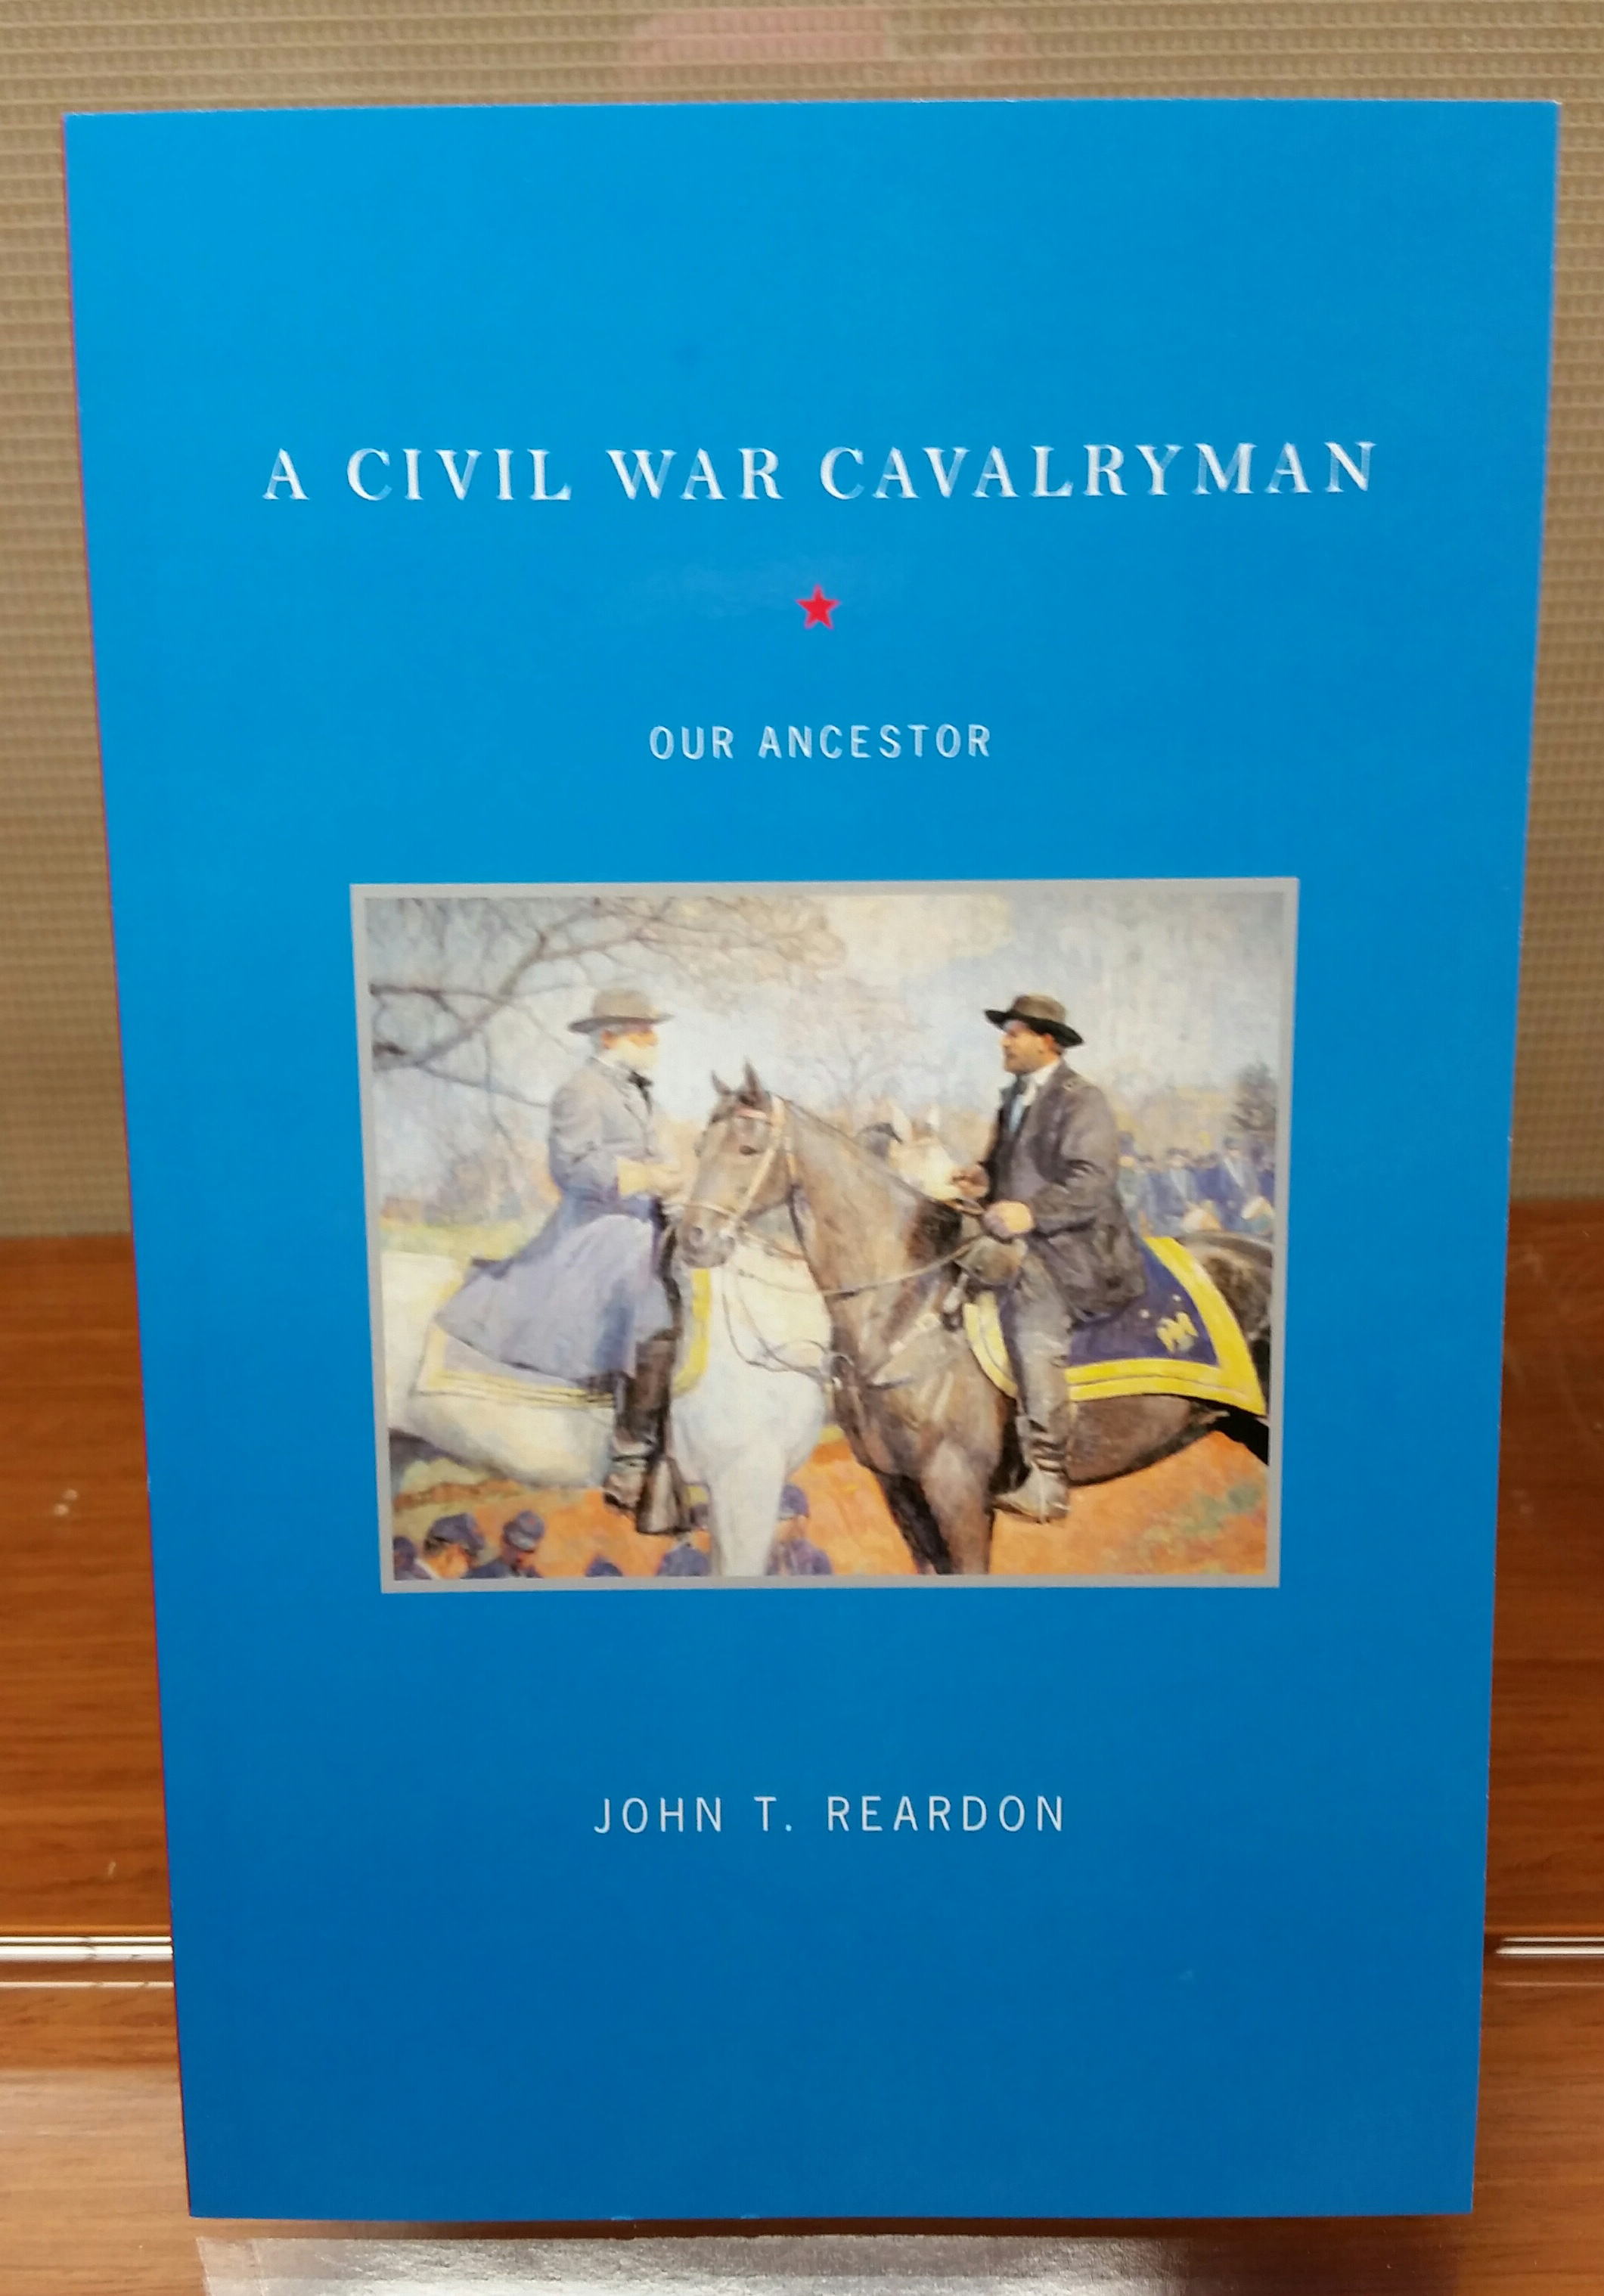 A Civil War Cavalryman, by John T. Reardon, 2008, 94 pp. Prices reflect the cost of the book PLUS S&H fee of $3.00.